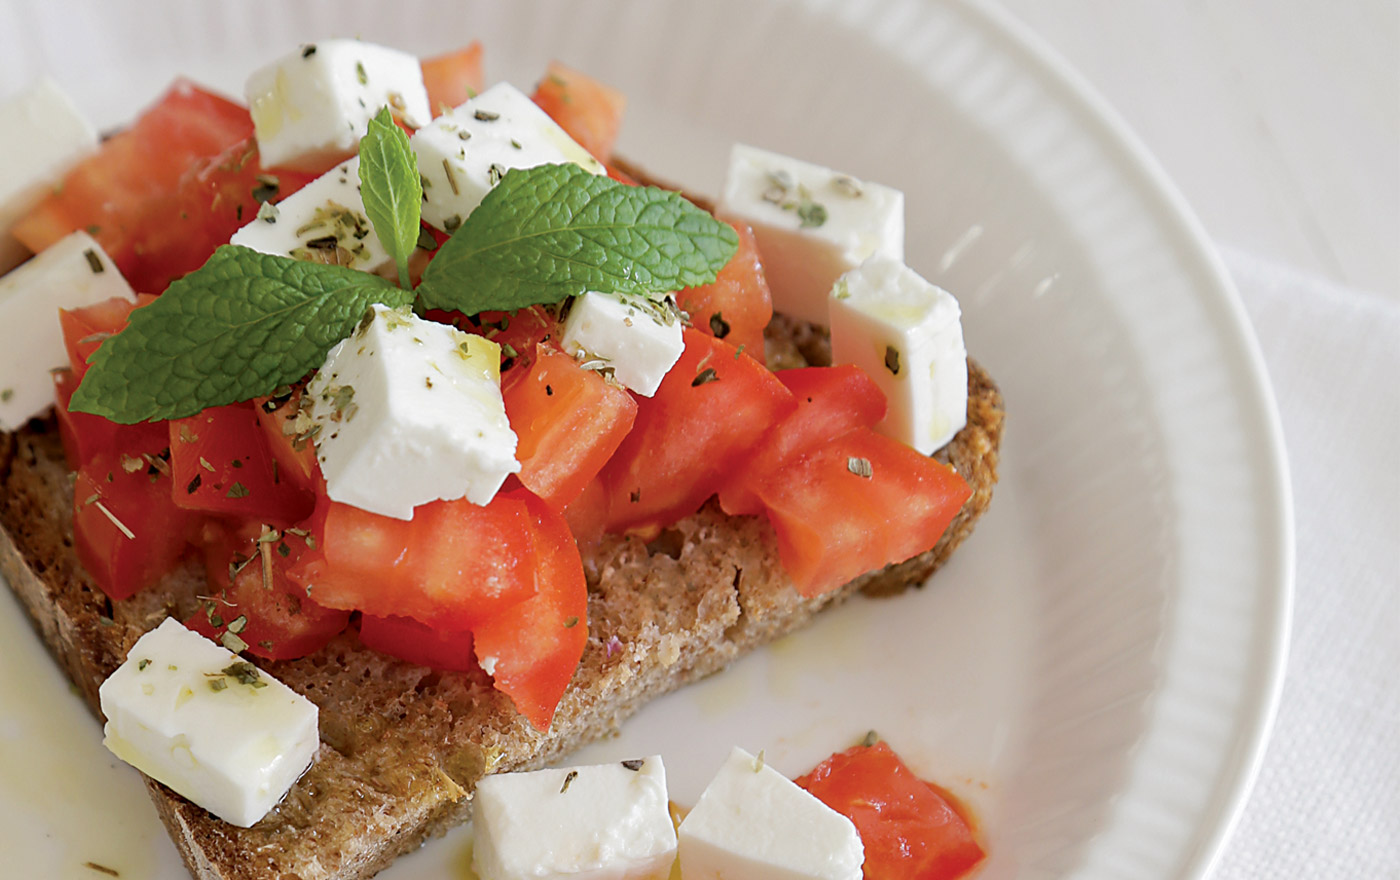 Barrel Feta on Toasted Bread with<br>Tomato, Oregano & Olive Oil